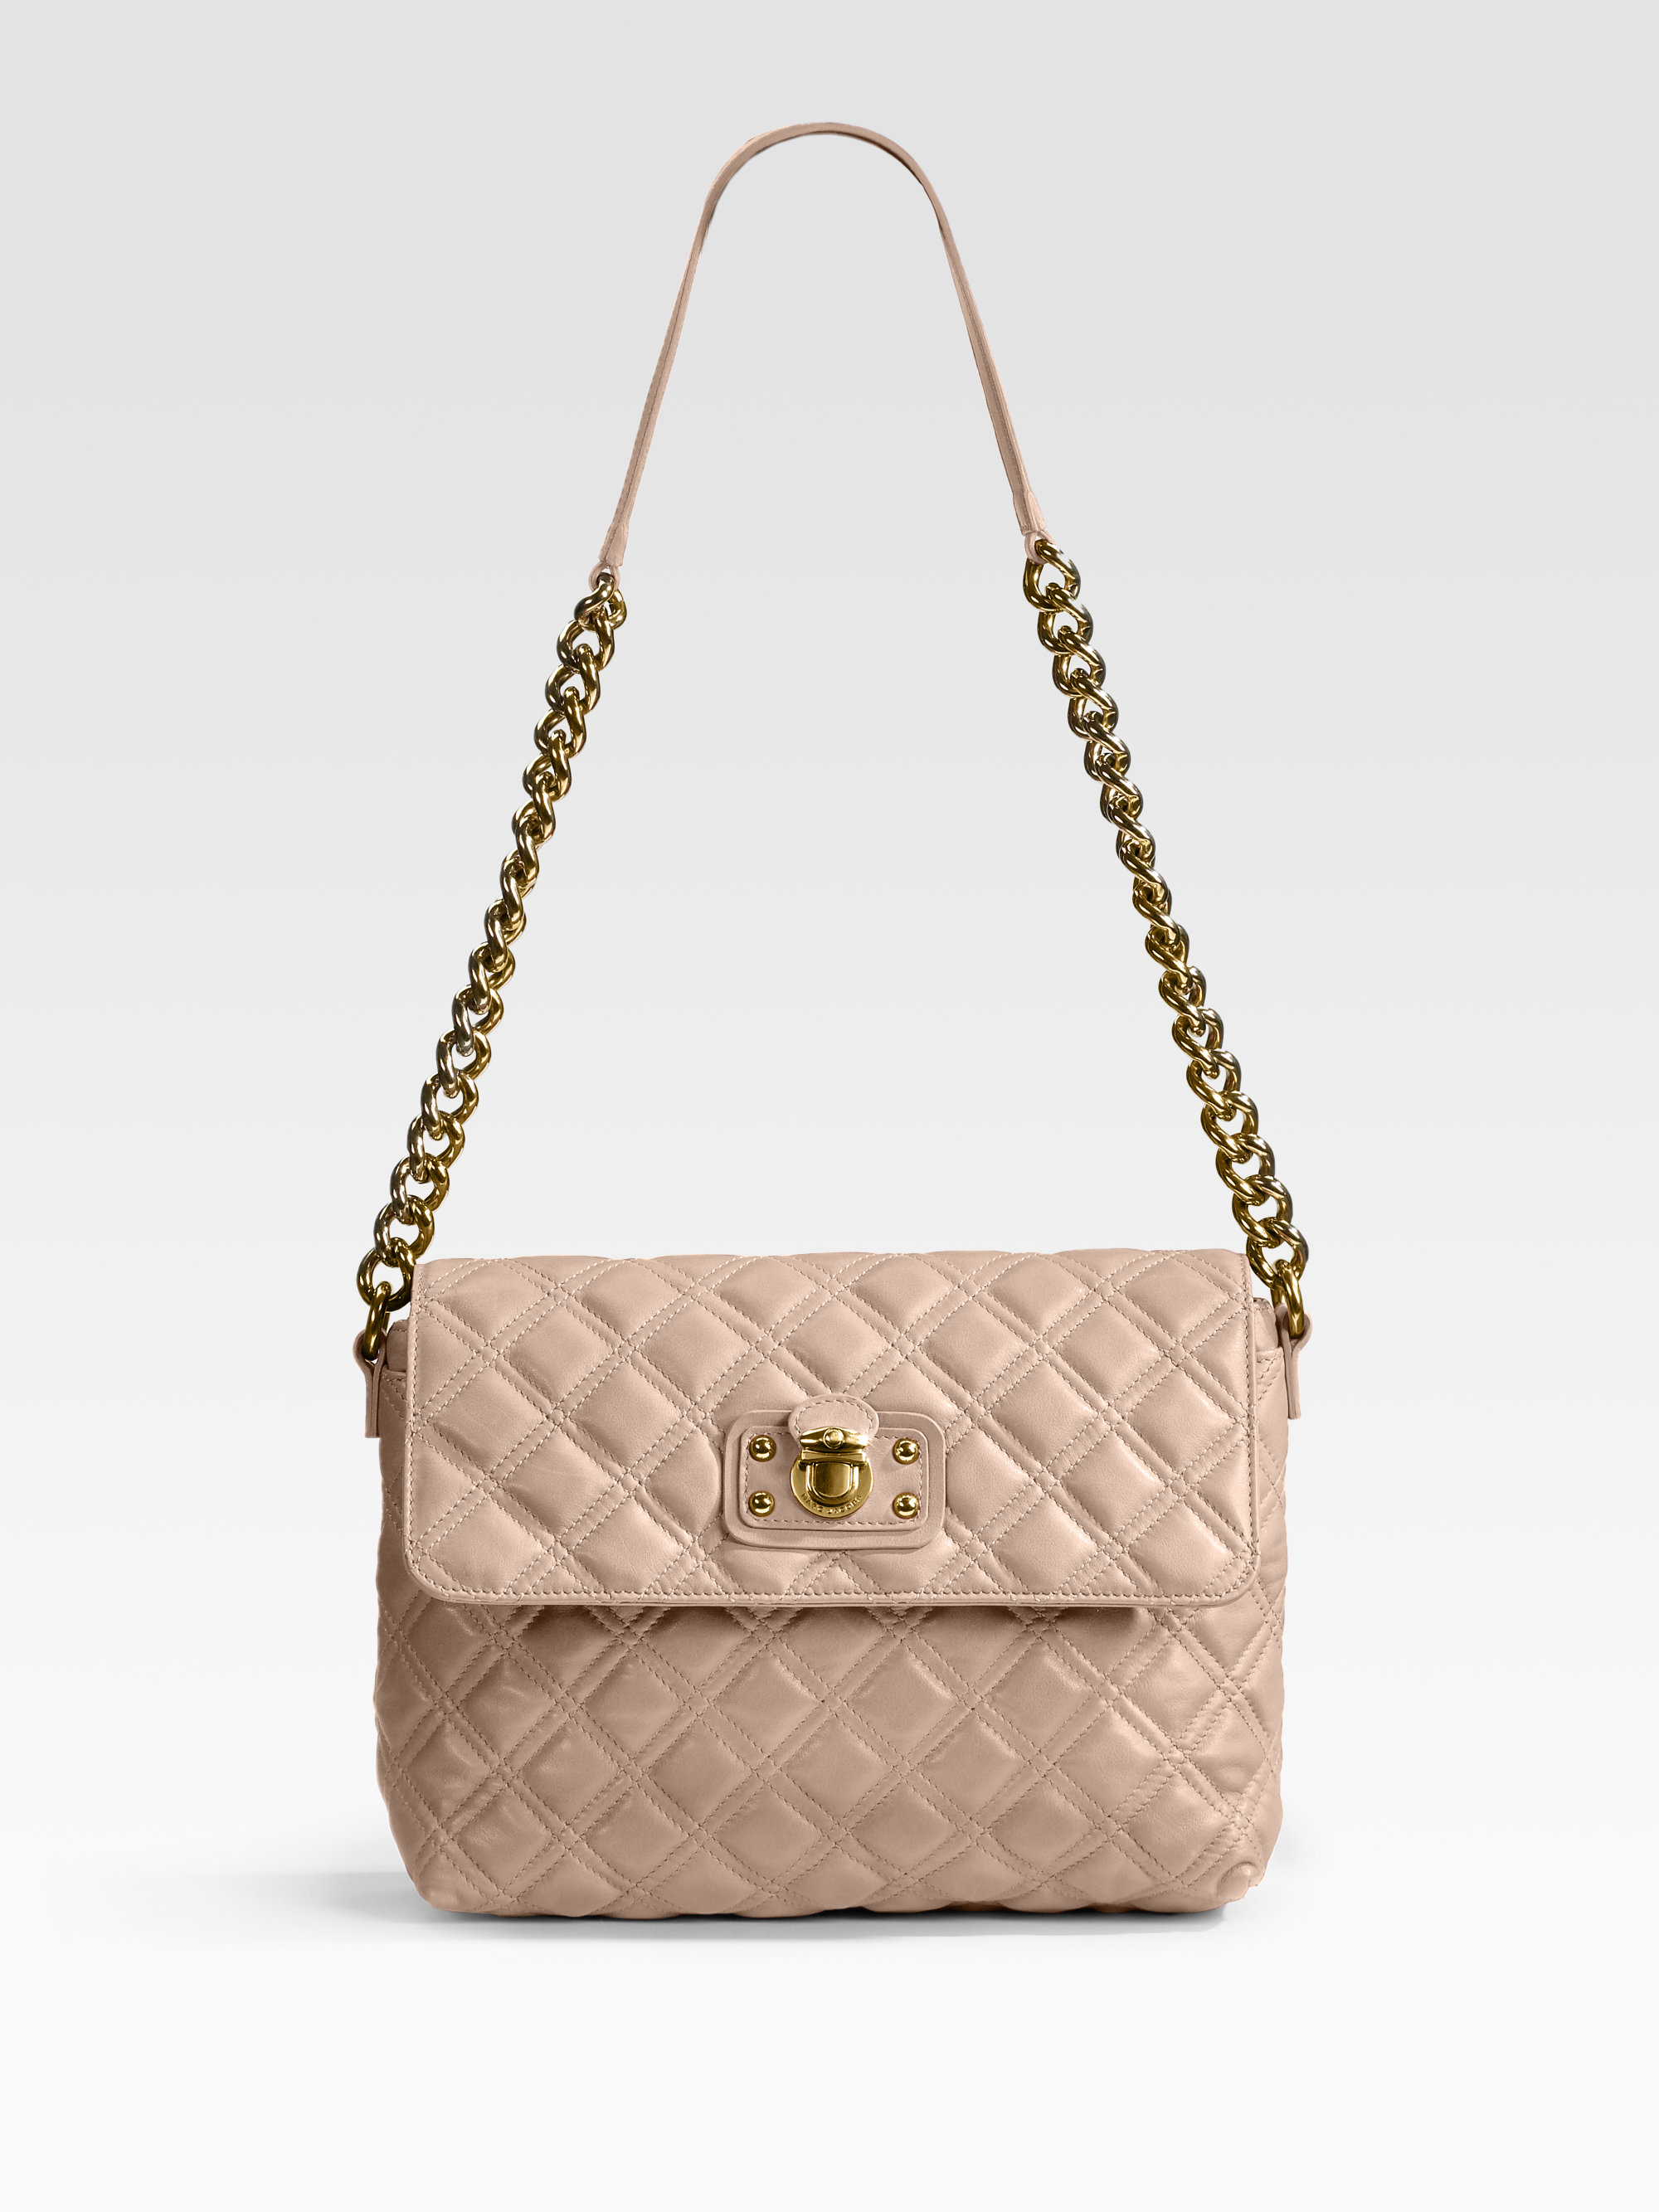 bb5aea2de37 Marc Jacobs Quilting The Large Single Leather Bag in Pink - Lyst